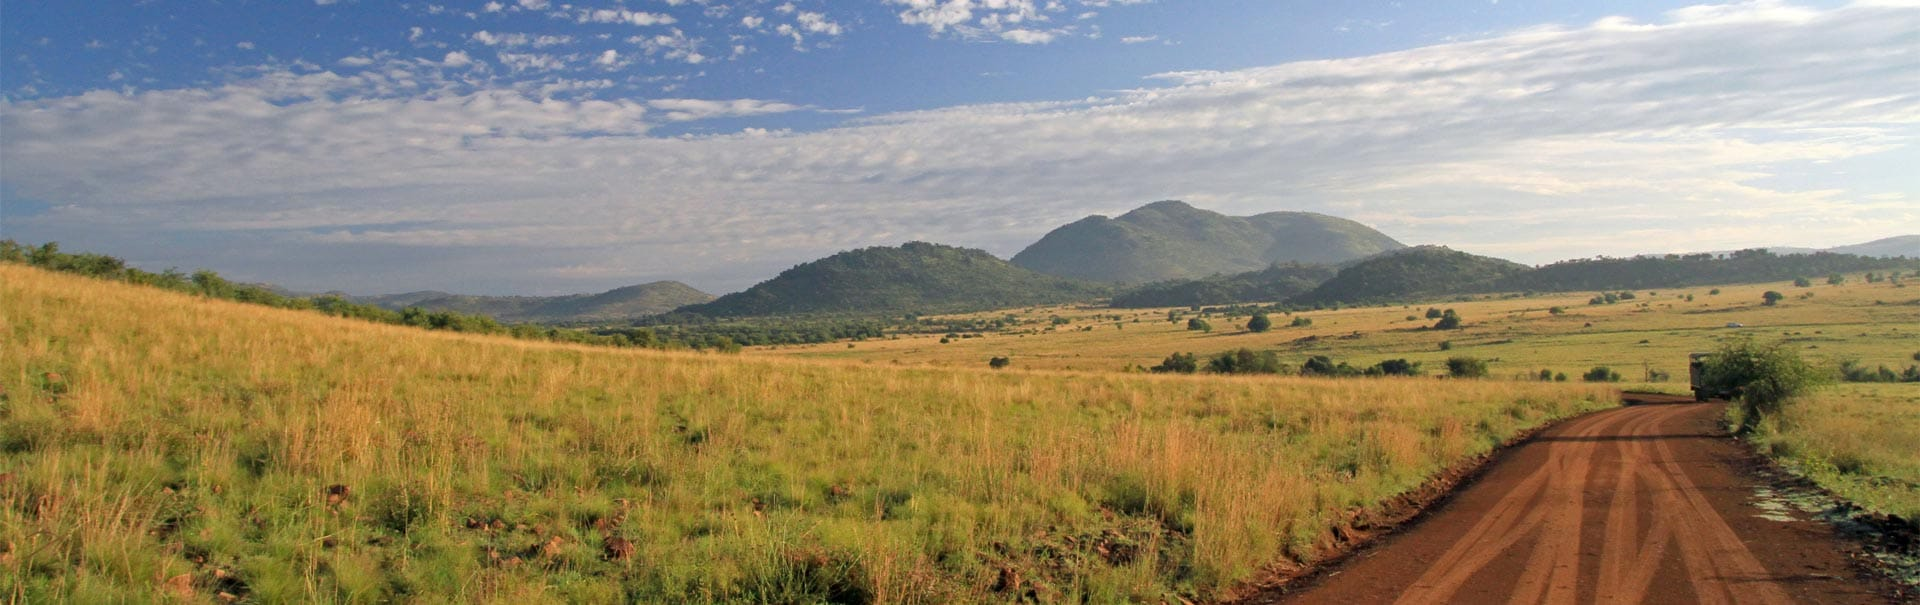 South Africa with Pilanesberg (SHSA1) Banner